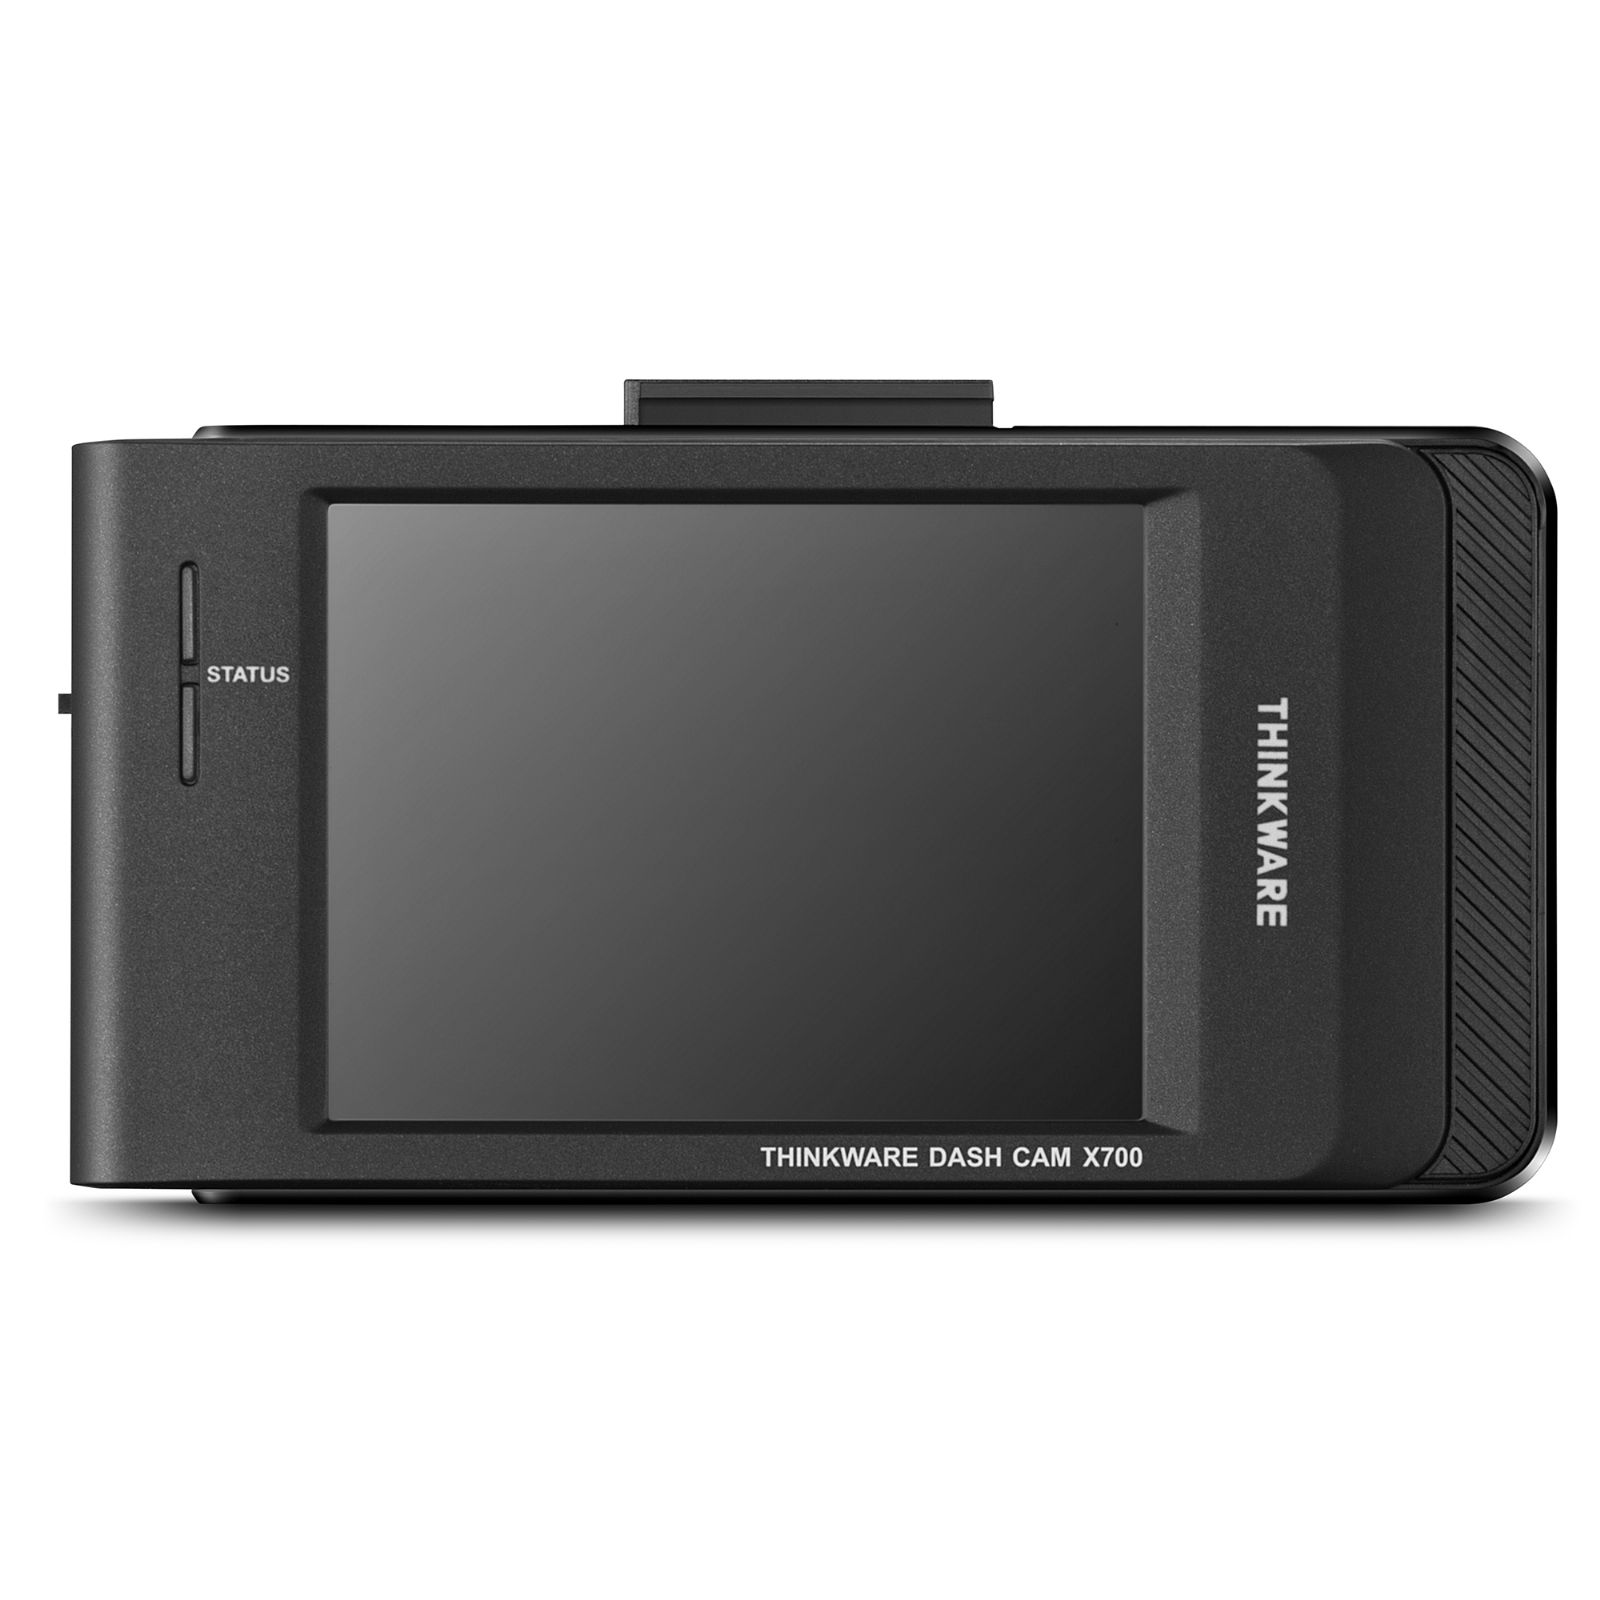 thinkware_hd_dash_cam_install_in_car